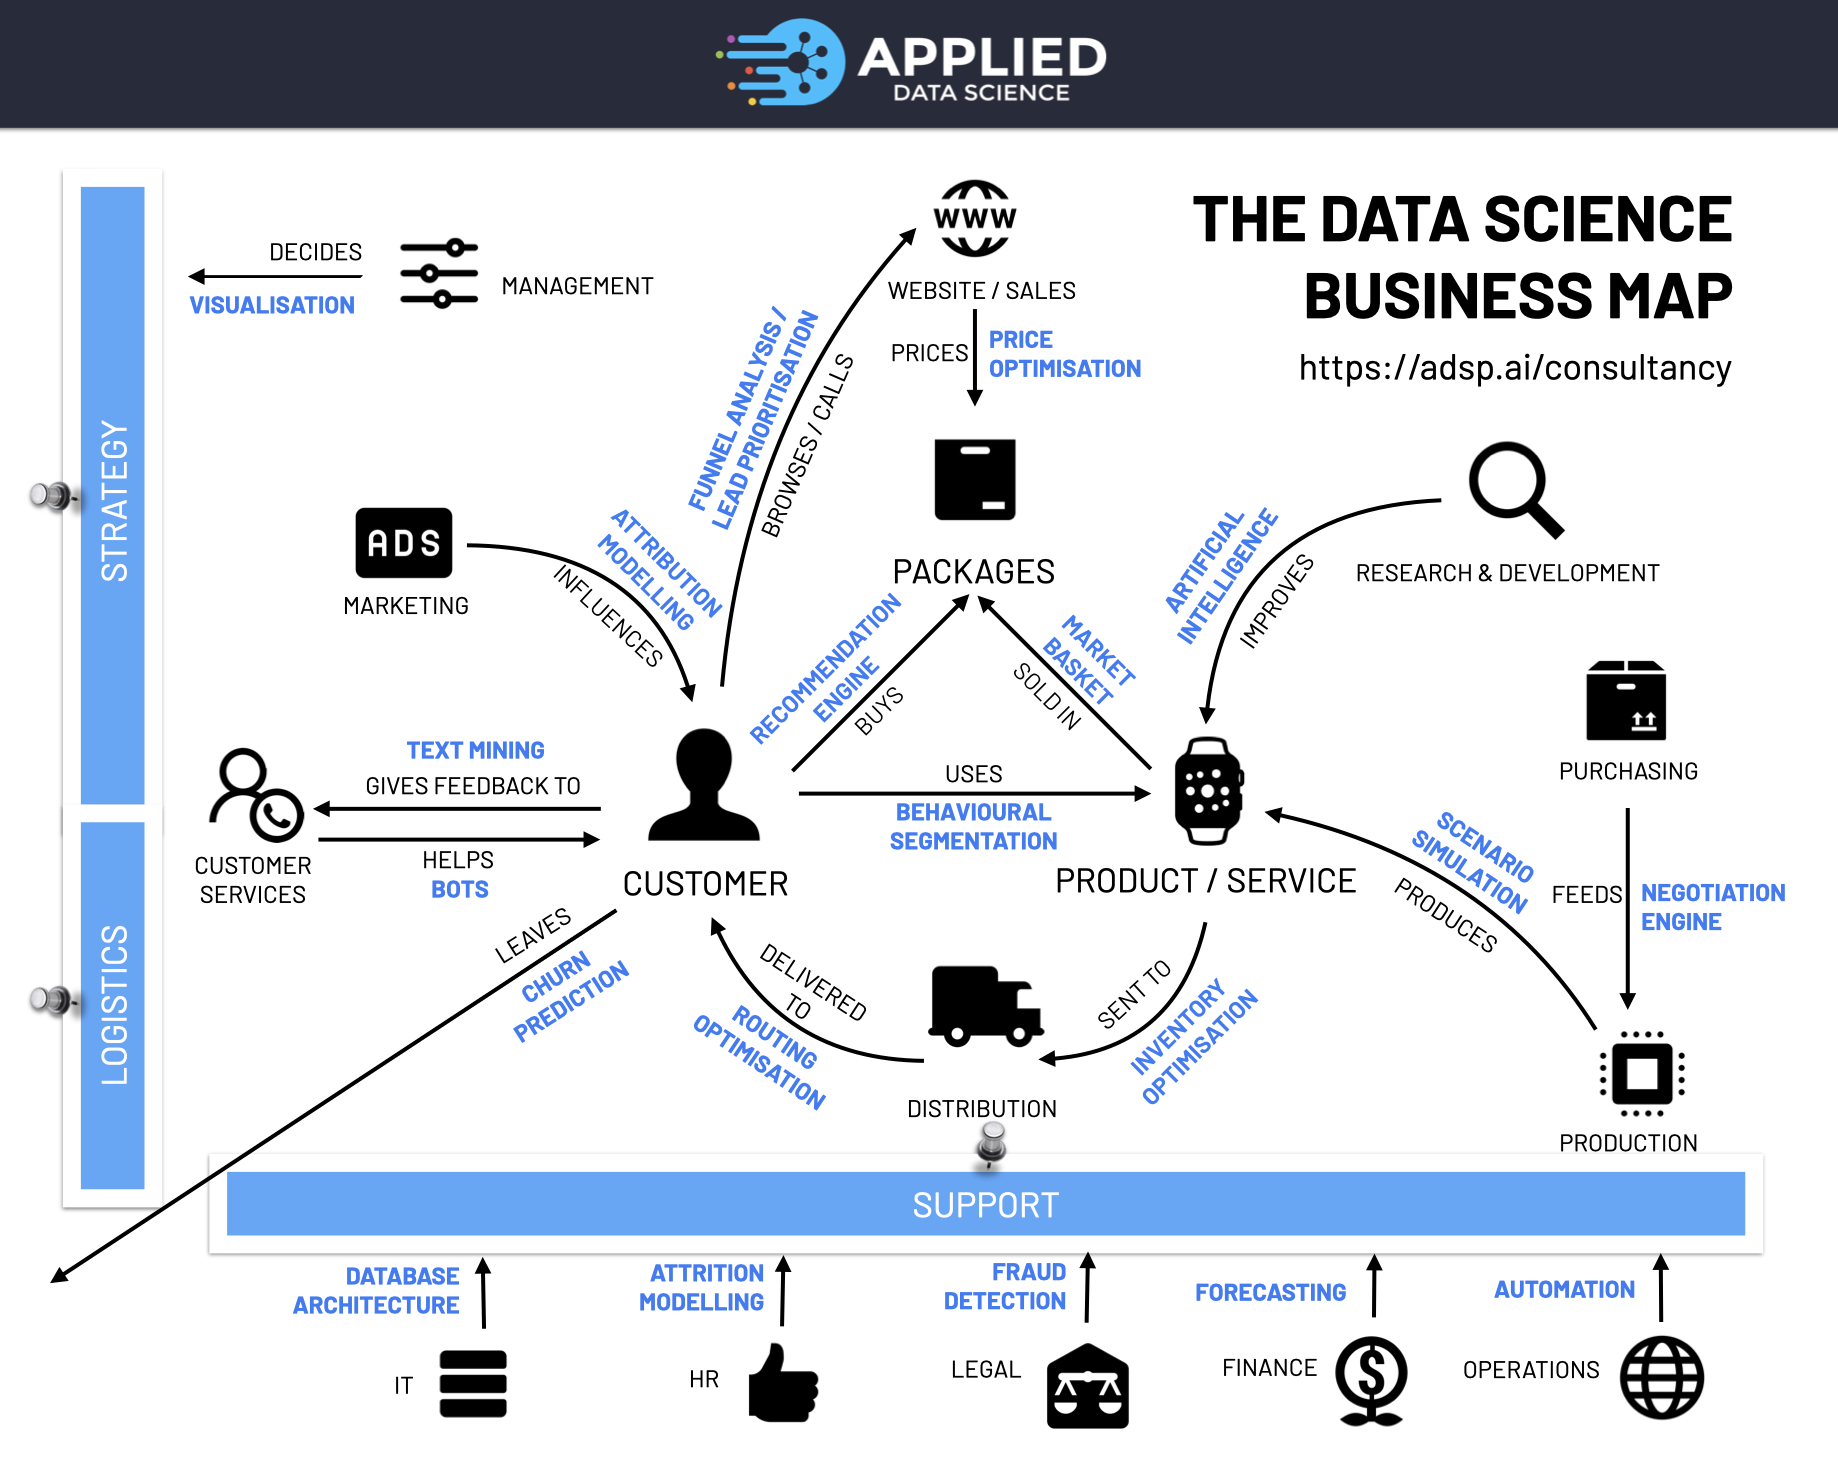 The Data Science Business Map